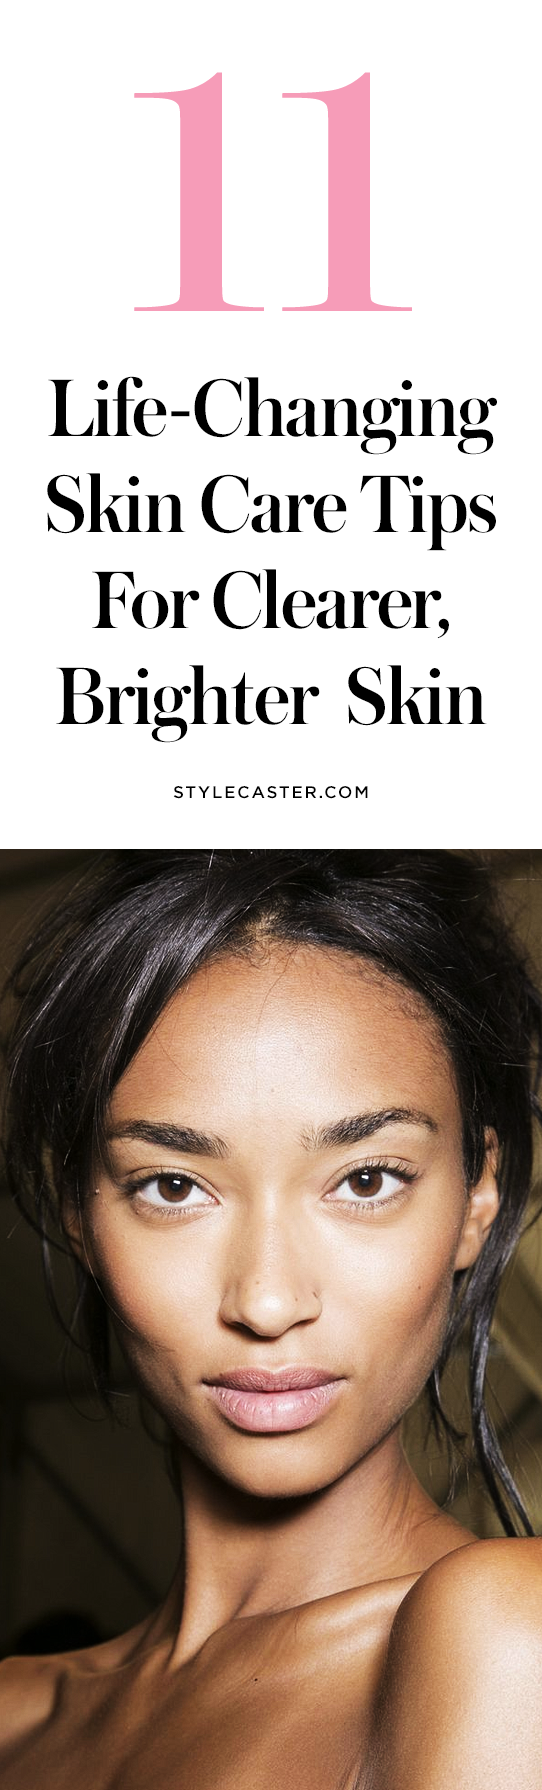 The Best Skin-Care Tricks For Clear, Bright, Pretty Skin  StyleCaster